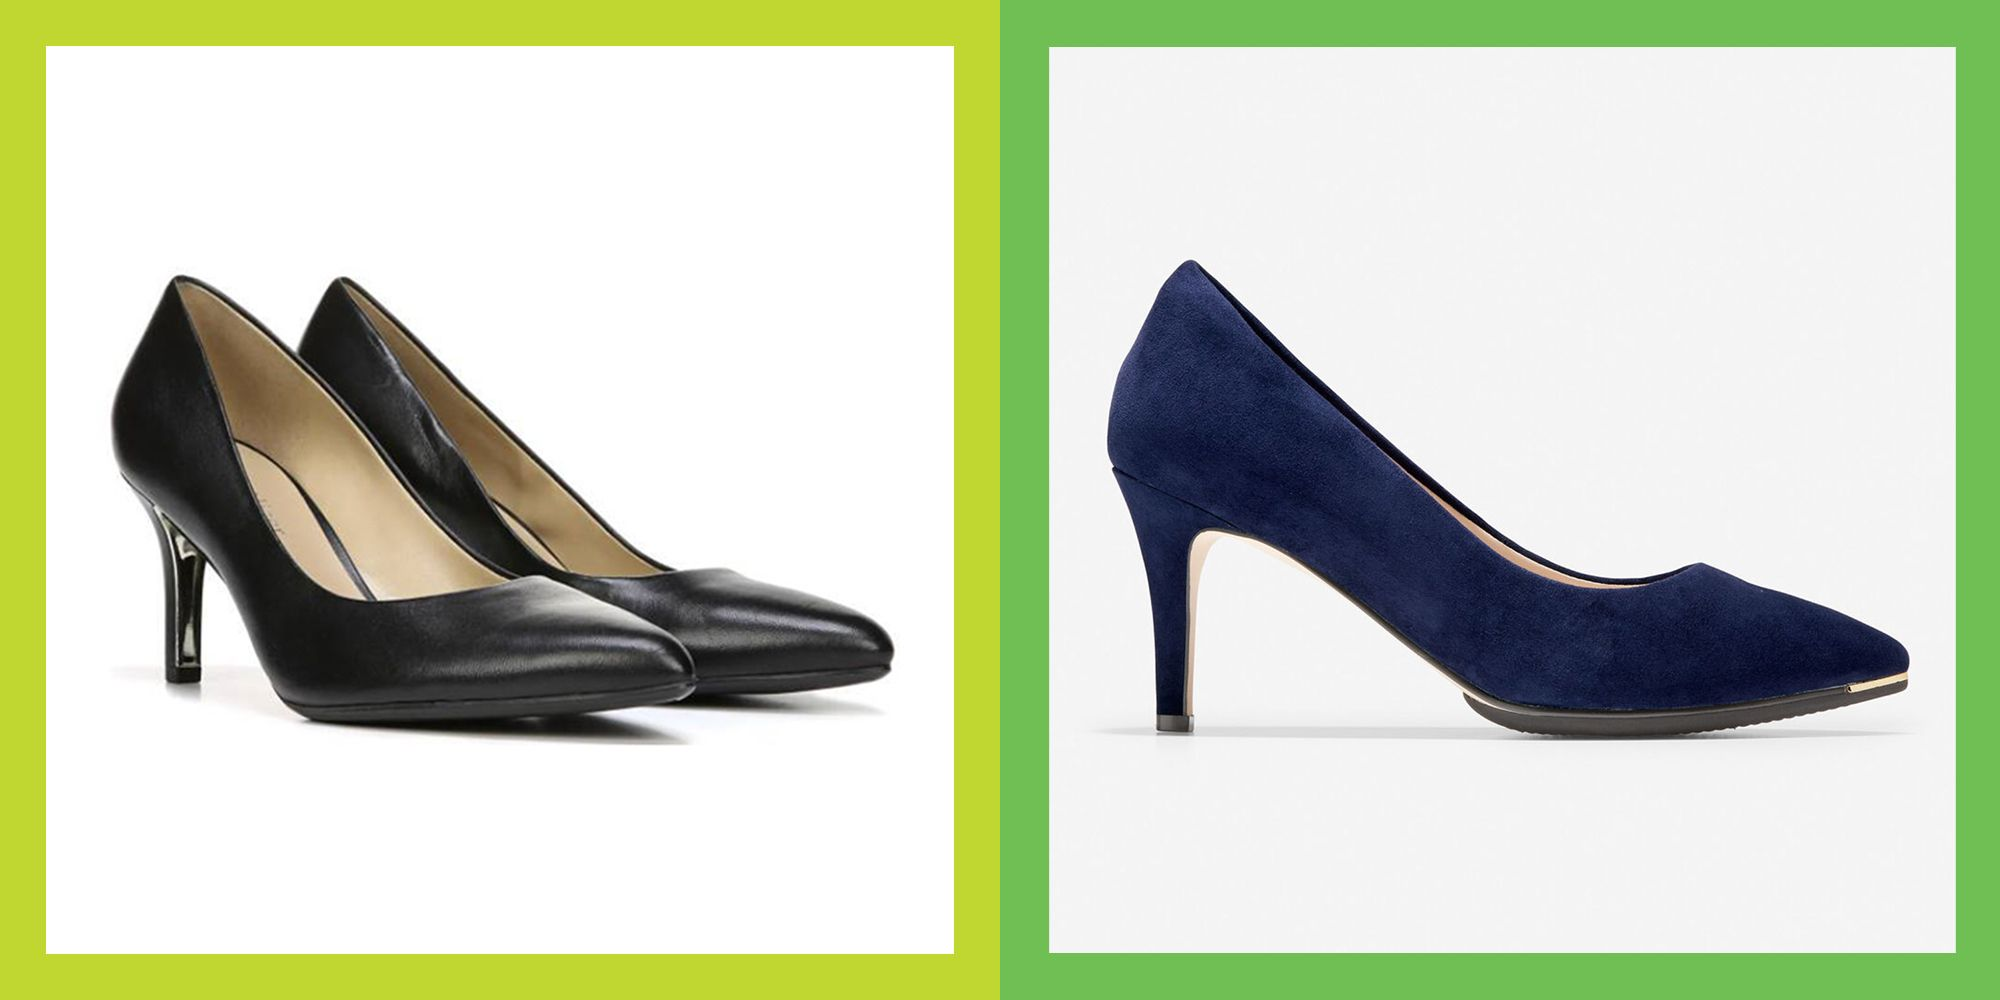 22 Most Comfortable High Heels Comfy High Heeled Shoes For Women